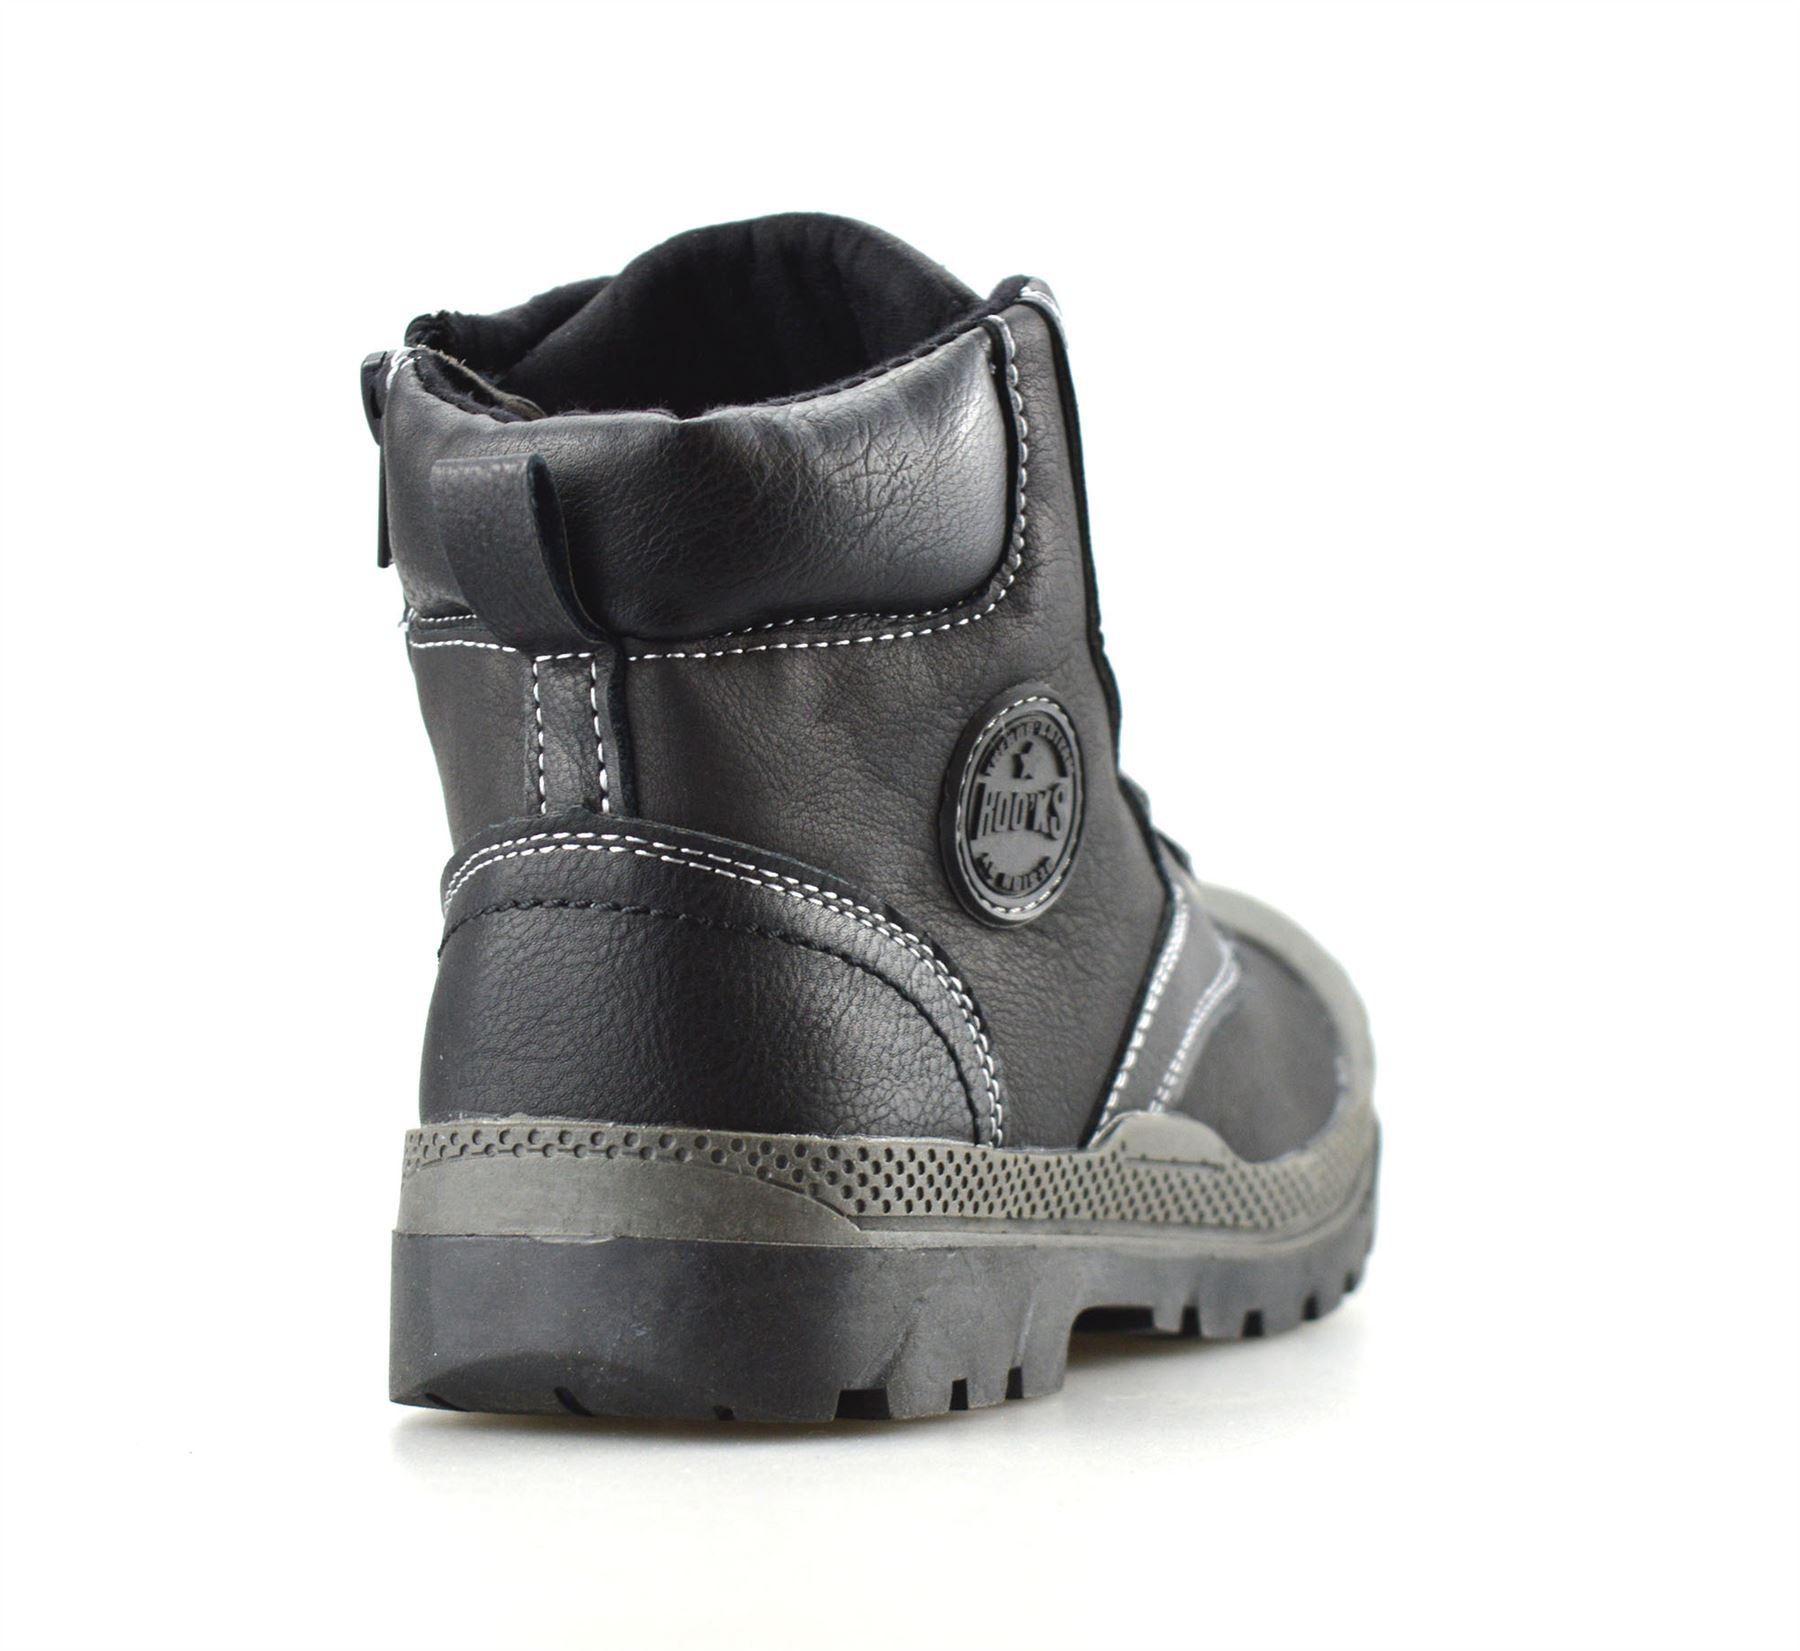 Boys Kids Infants Casual Zip Lace Up Winter Warm Ankle Boots Trainers Shoes Size